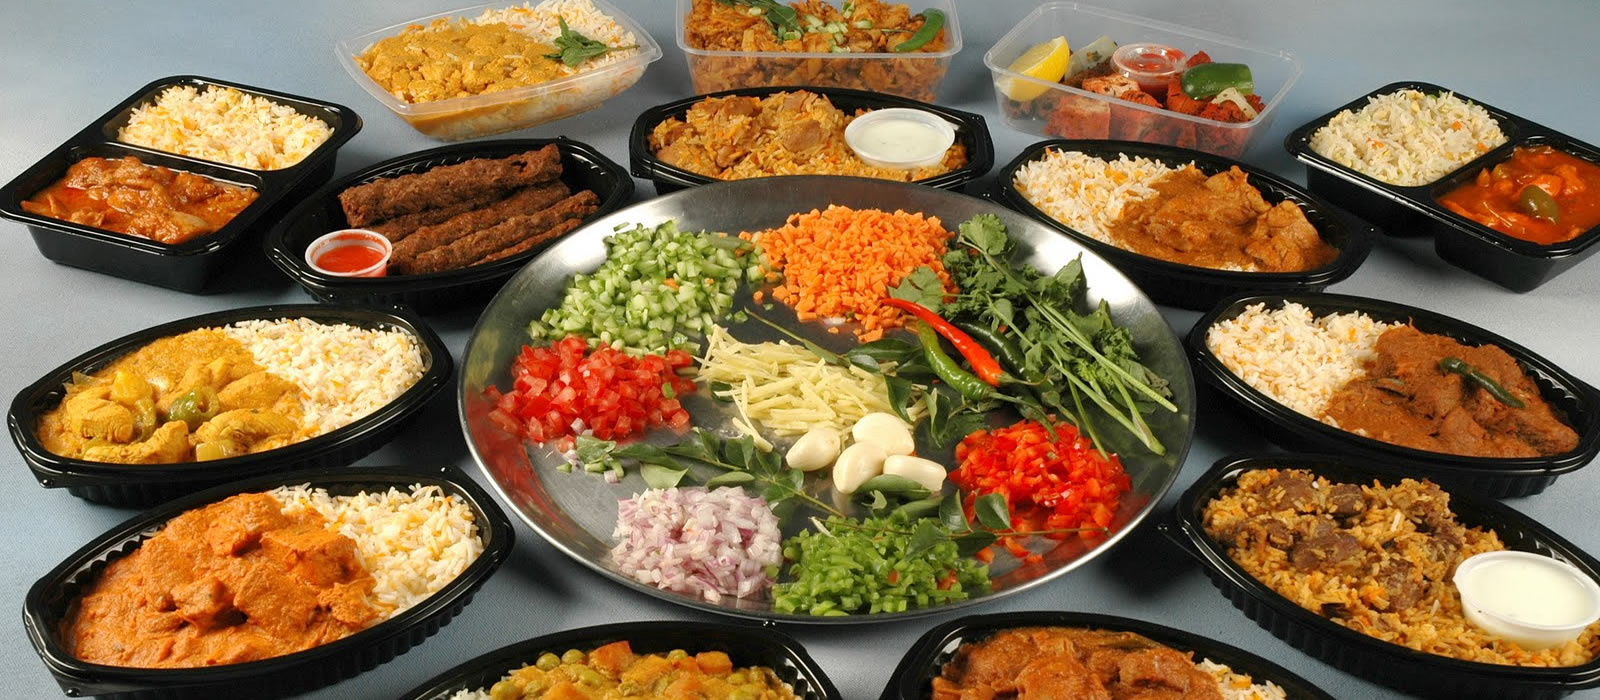 Catering Services in Chandigarh | Red Tag Caterers | Catering Services in Chandigarh, Best Catering Services in Chandigarh, Non-veg Catering Services in Chandigarh, Veg Catering Services in Chandigarh, Weeding Catering Services in Chandigarh - GL43149